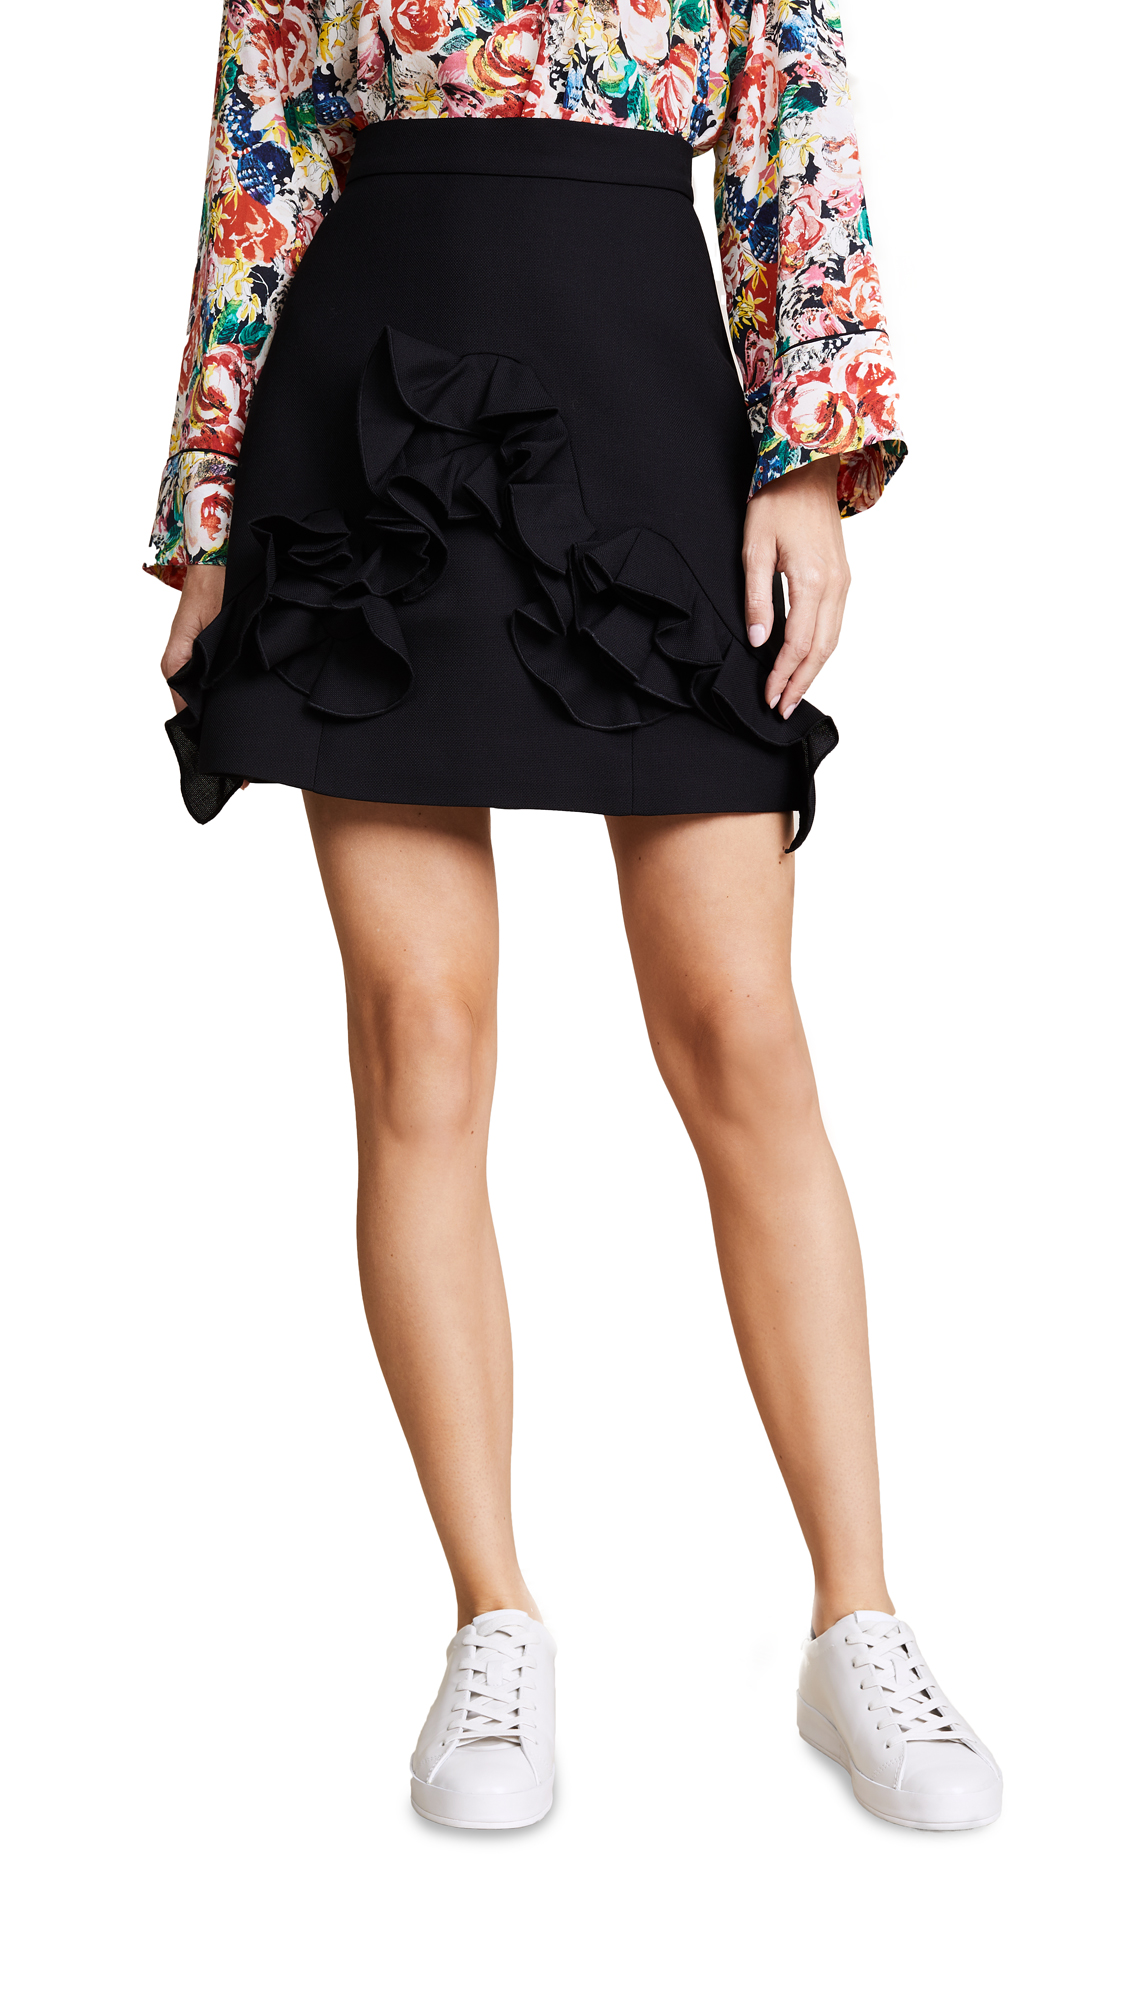 Acler Dixon Skirt - Black